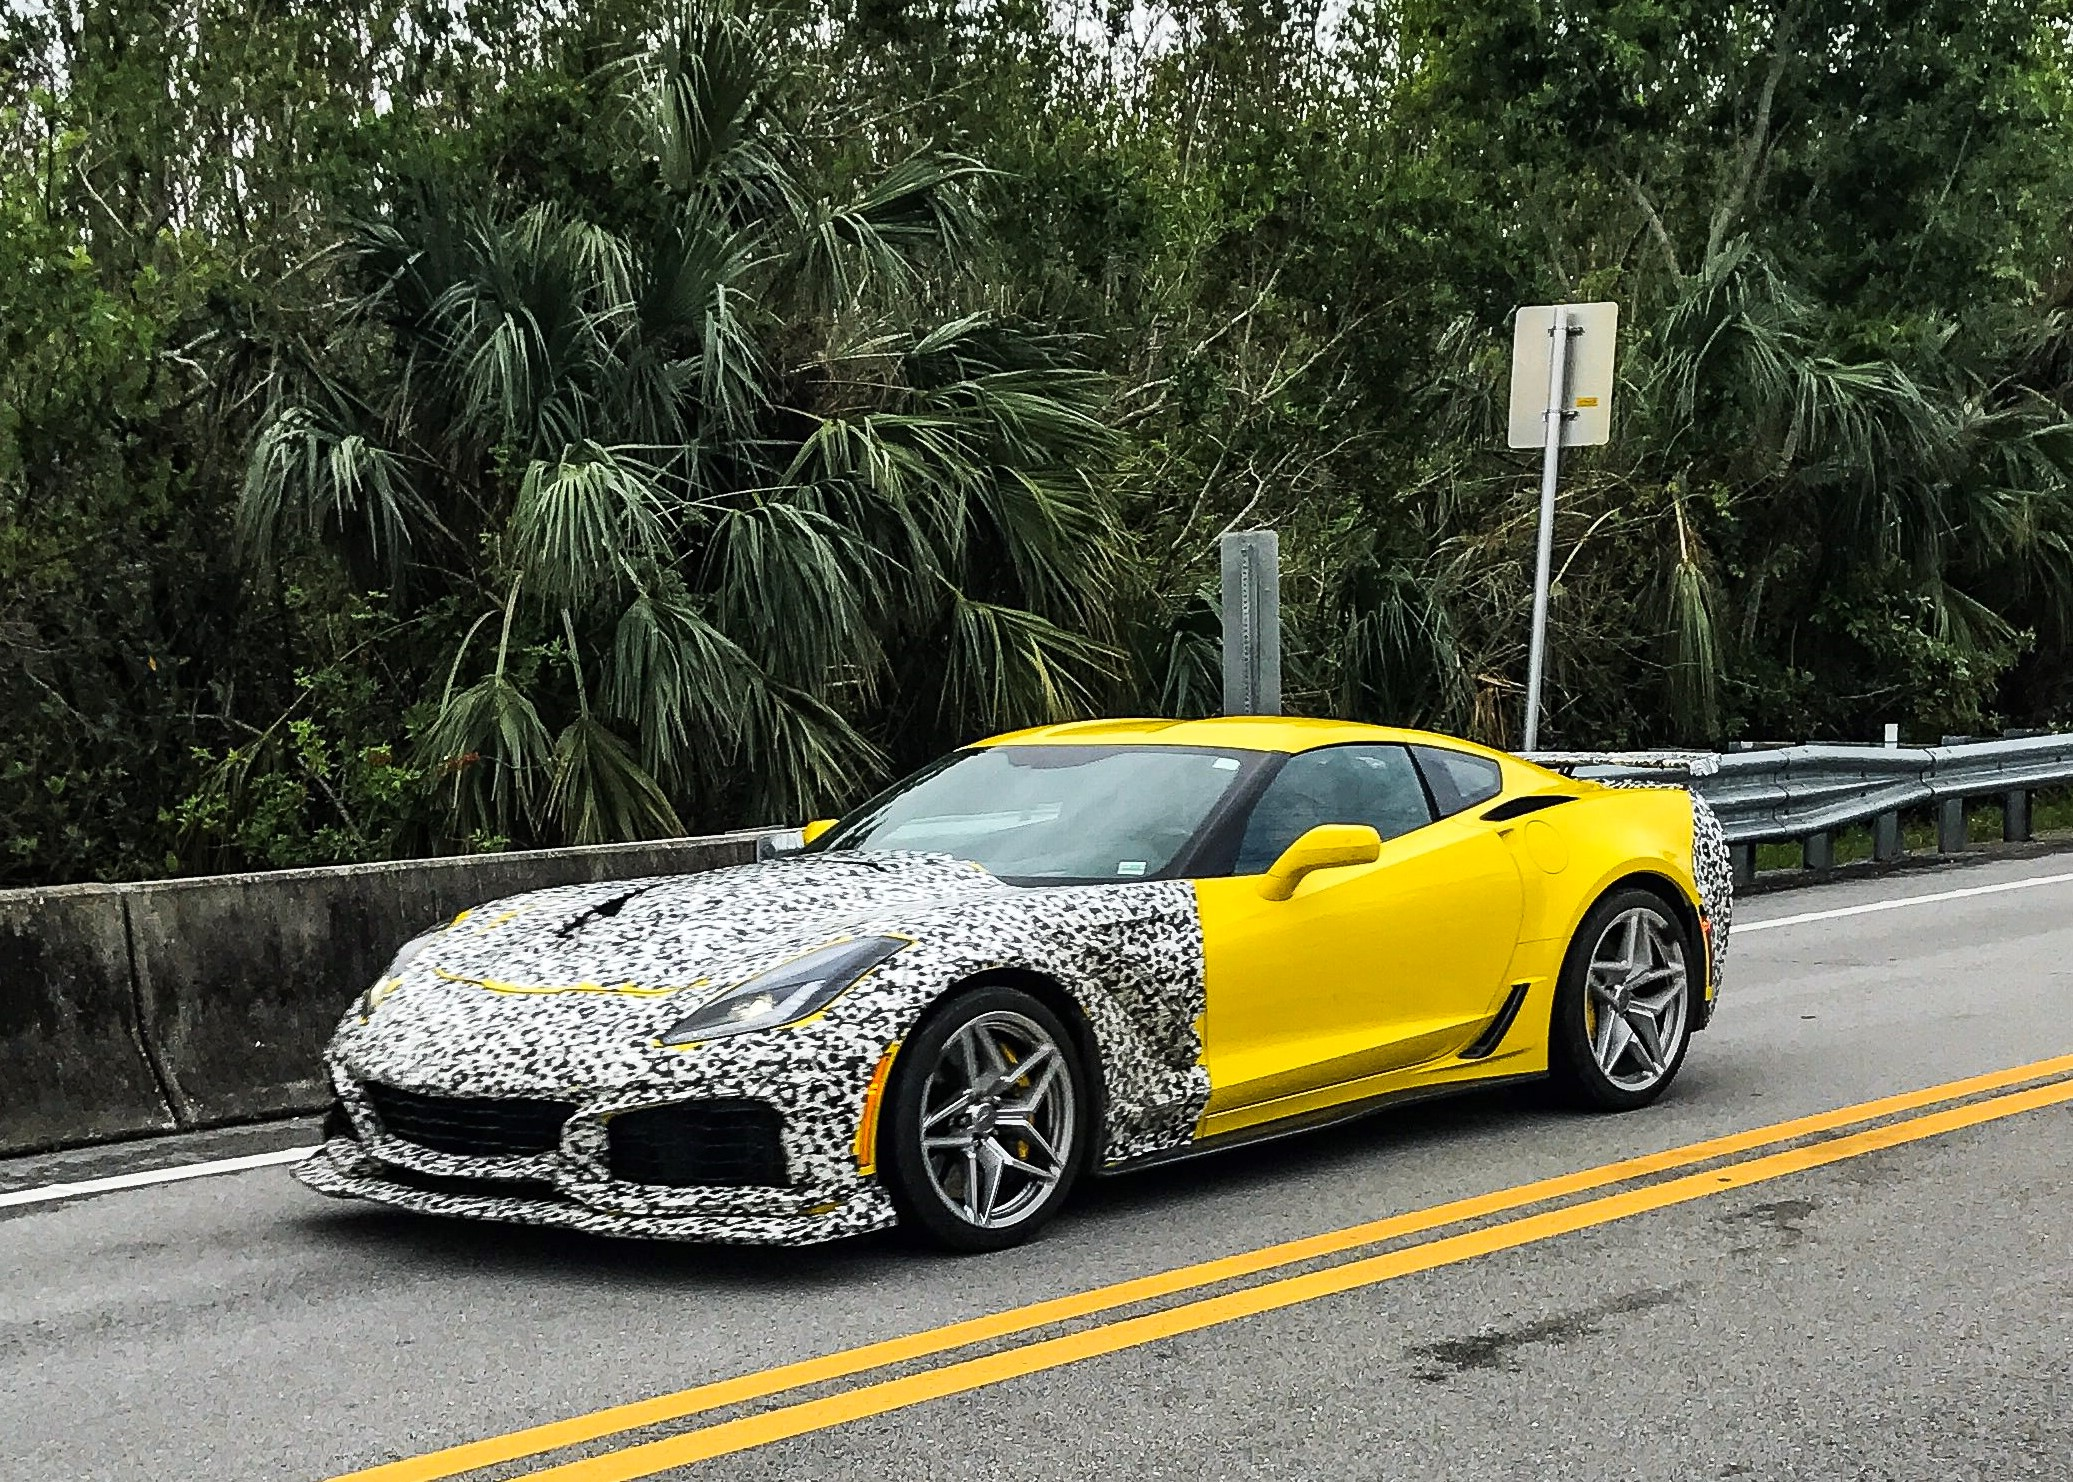 New Chevrolet Corvette Zr1 Convertible Spotted Testing Already